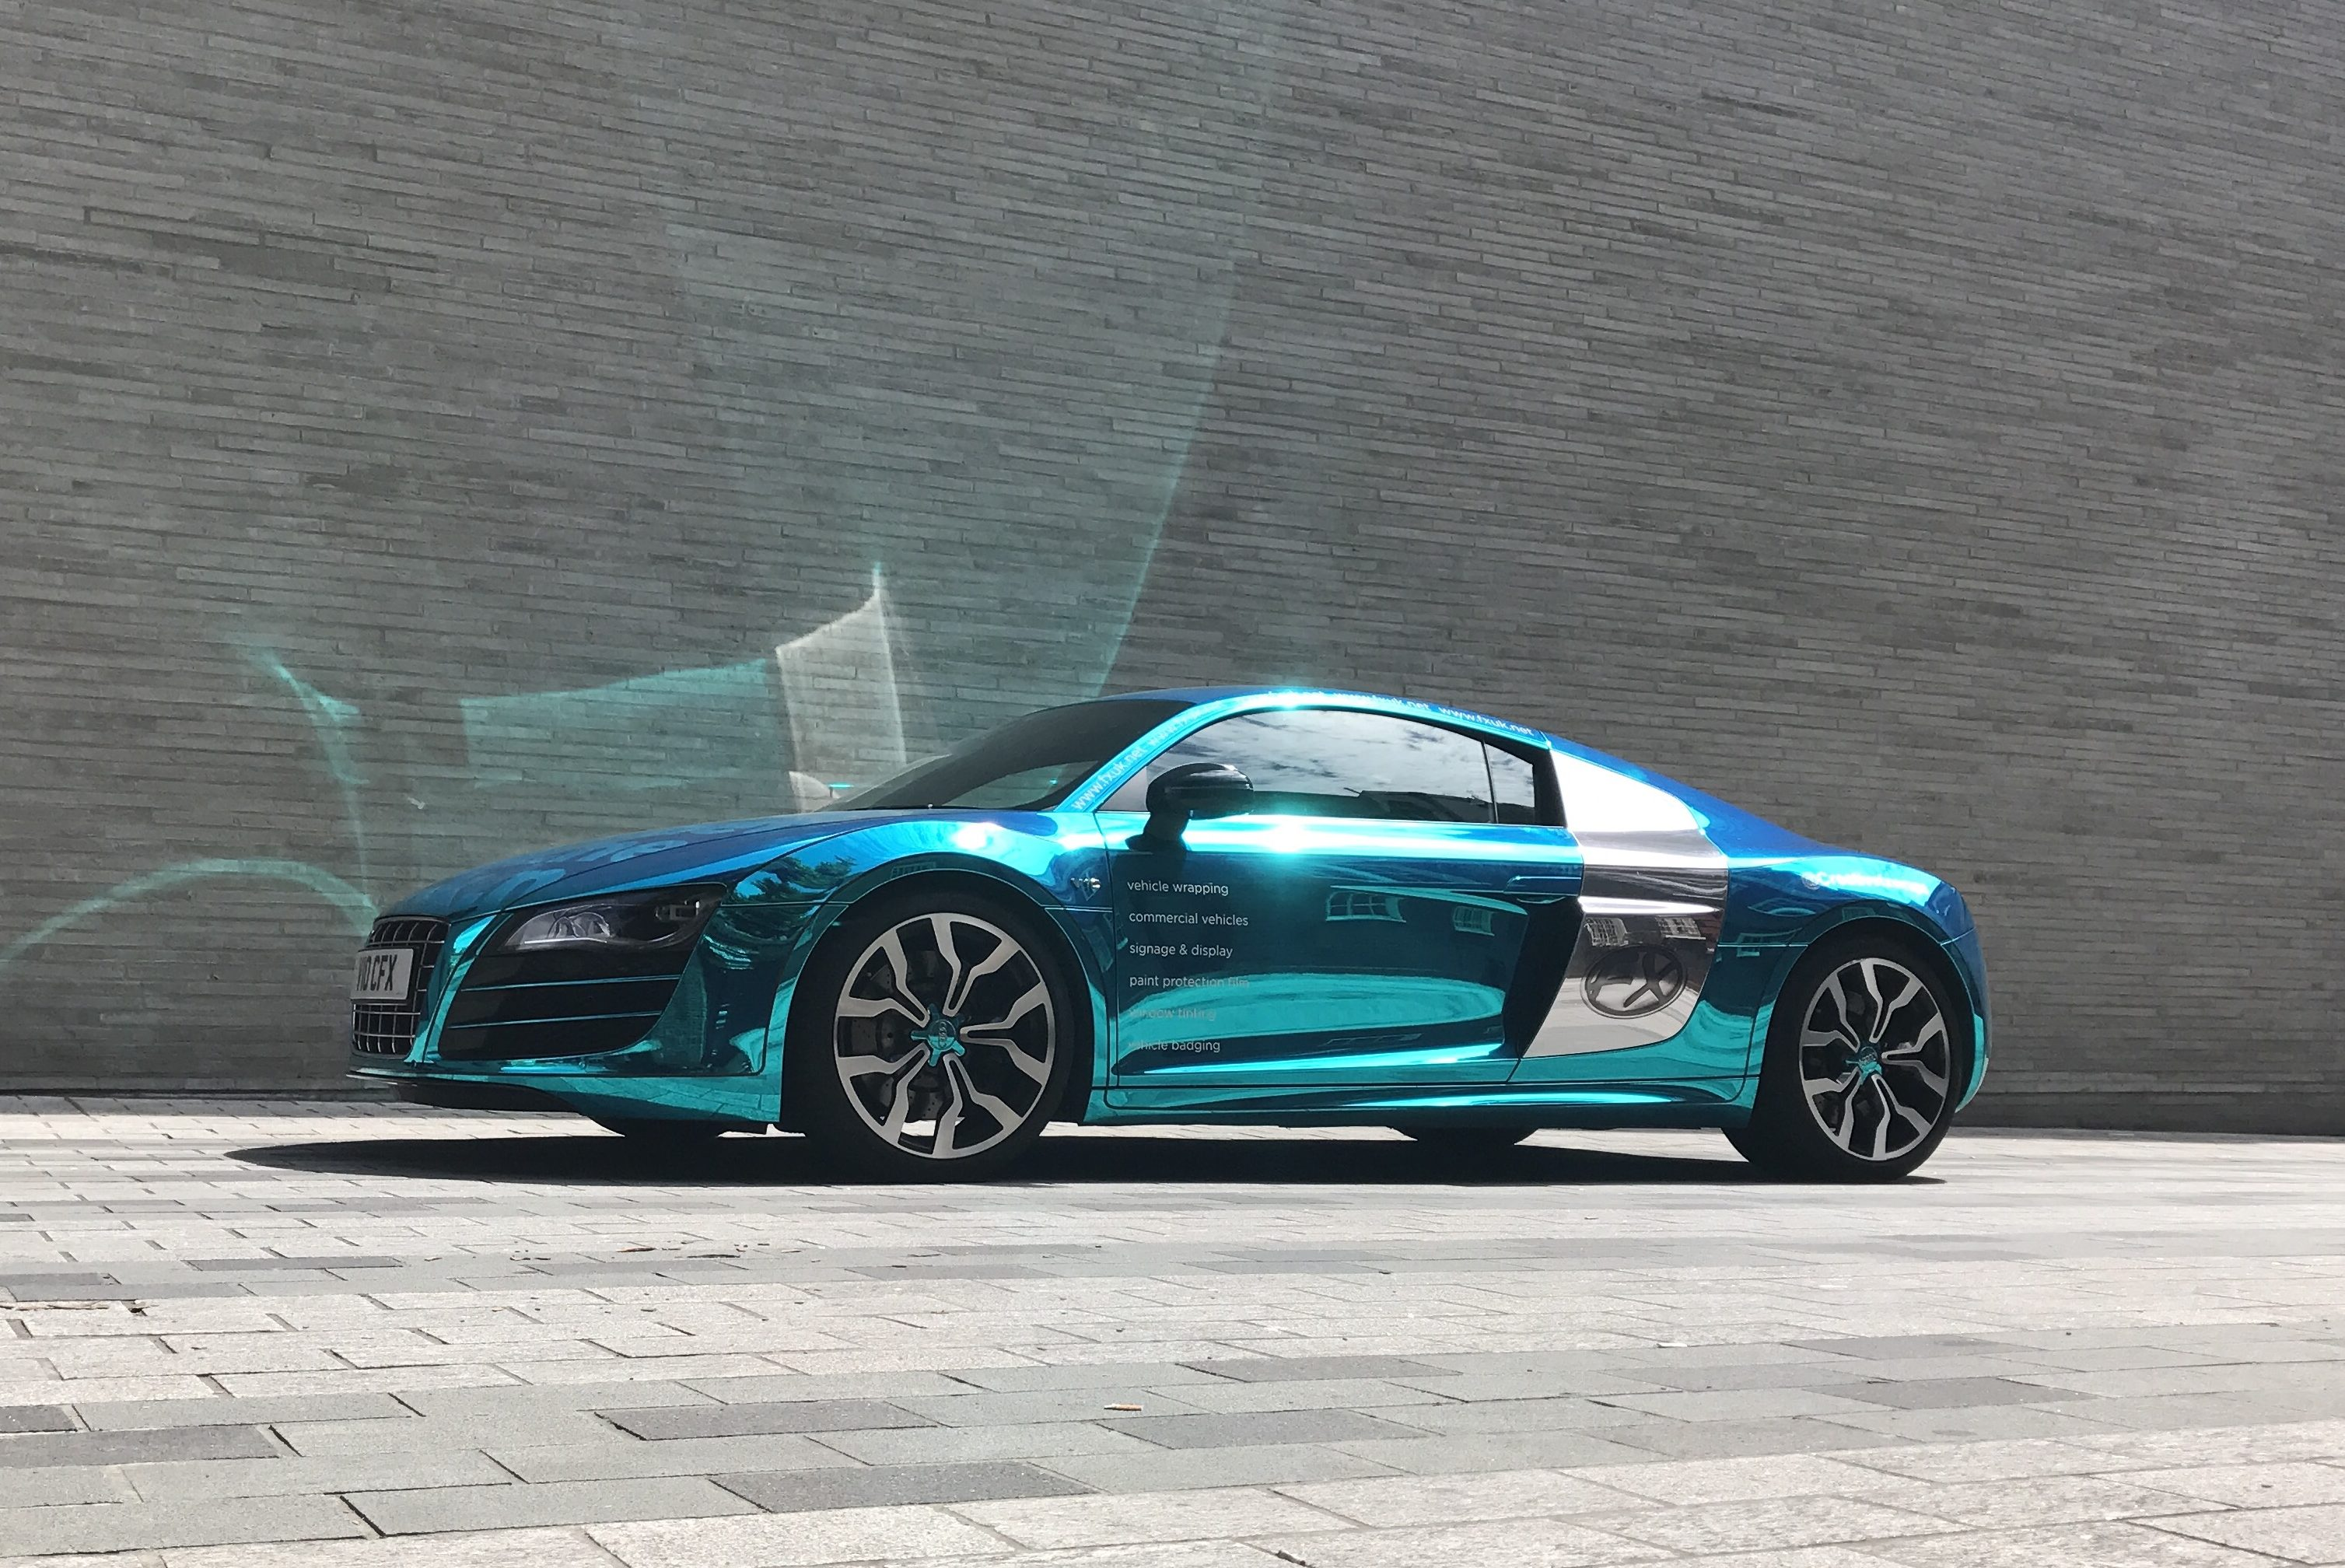 Audi R V Wrapped In Chrome By CFX London - Audi car commercial